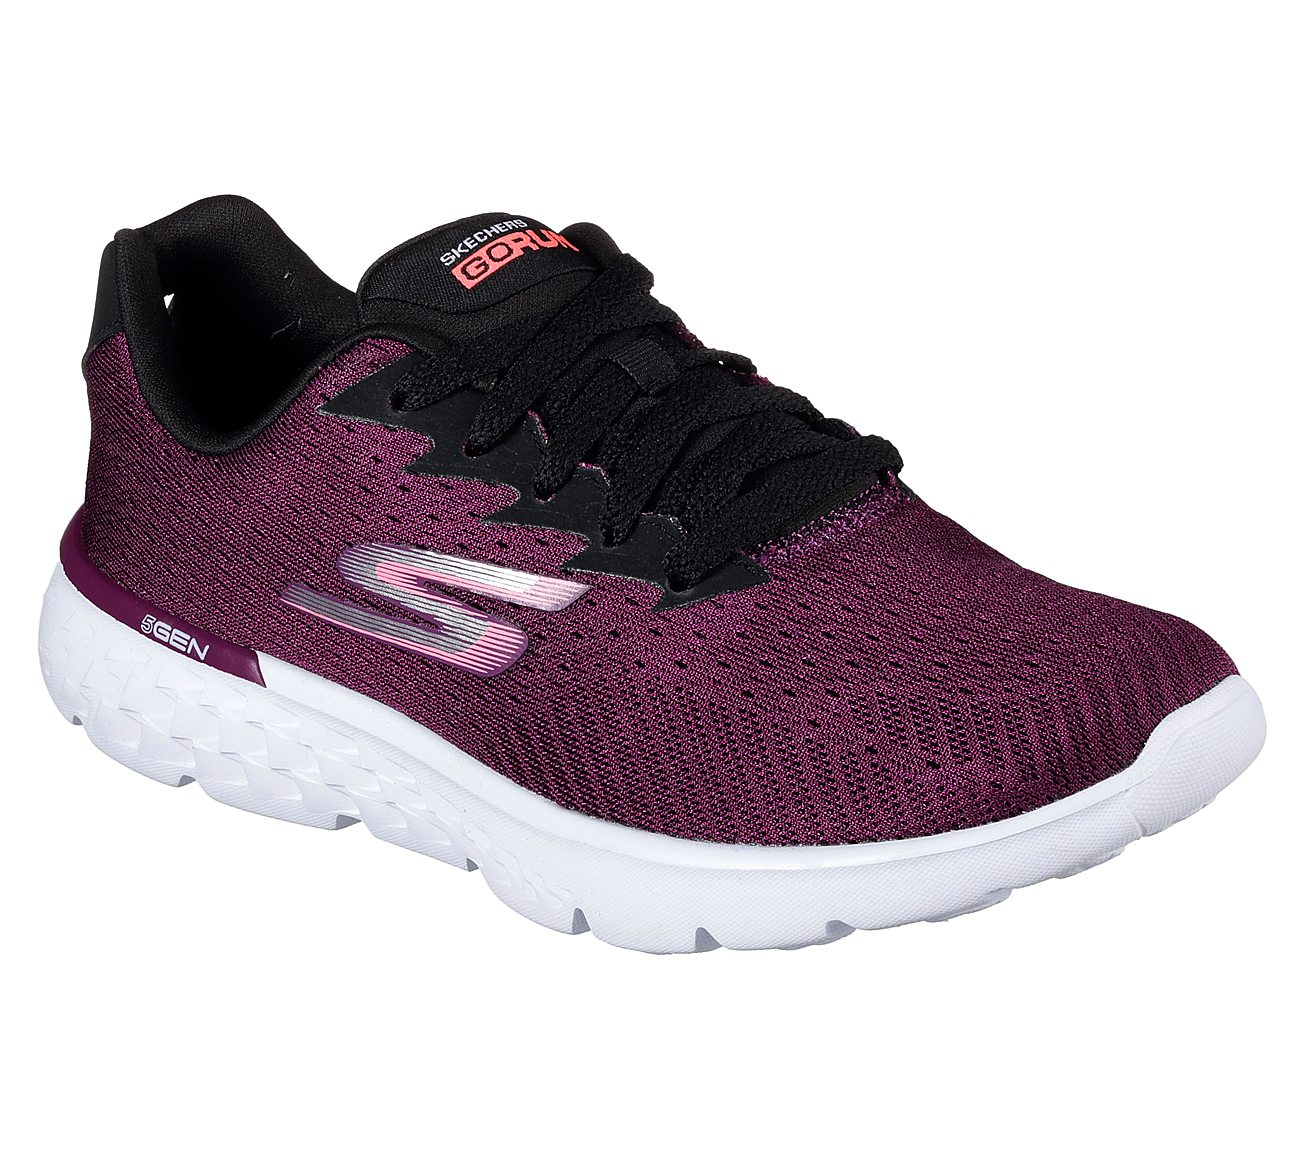 Skechers Go Run 400 Sole, Chaussures de Running Femme